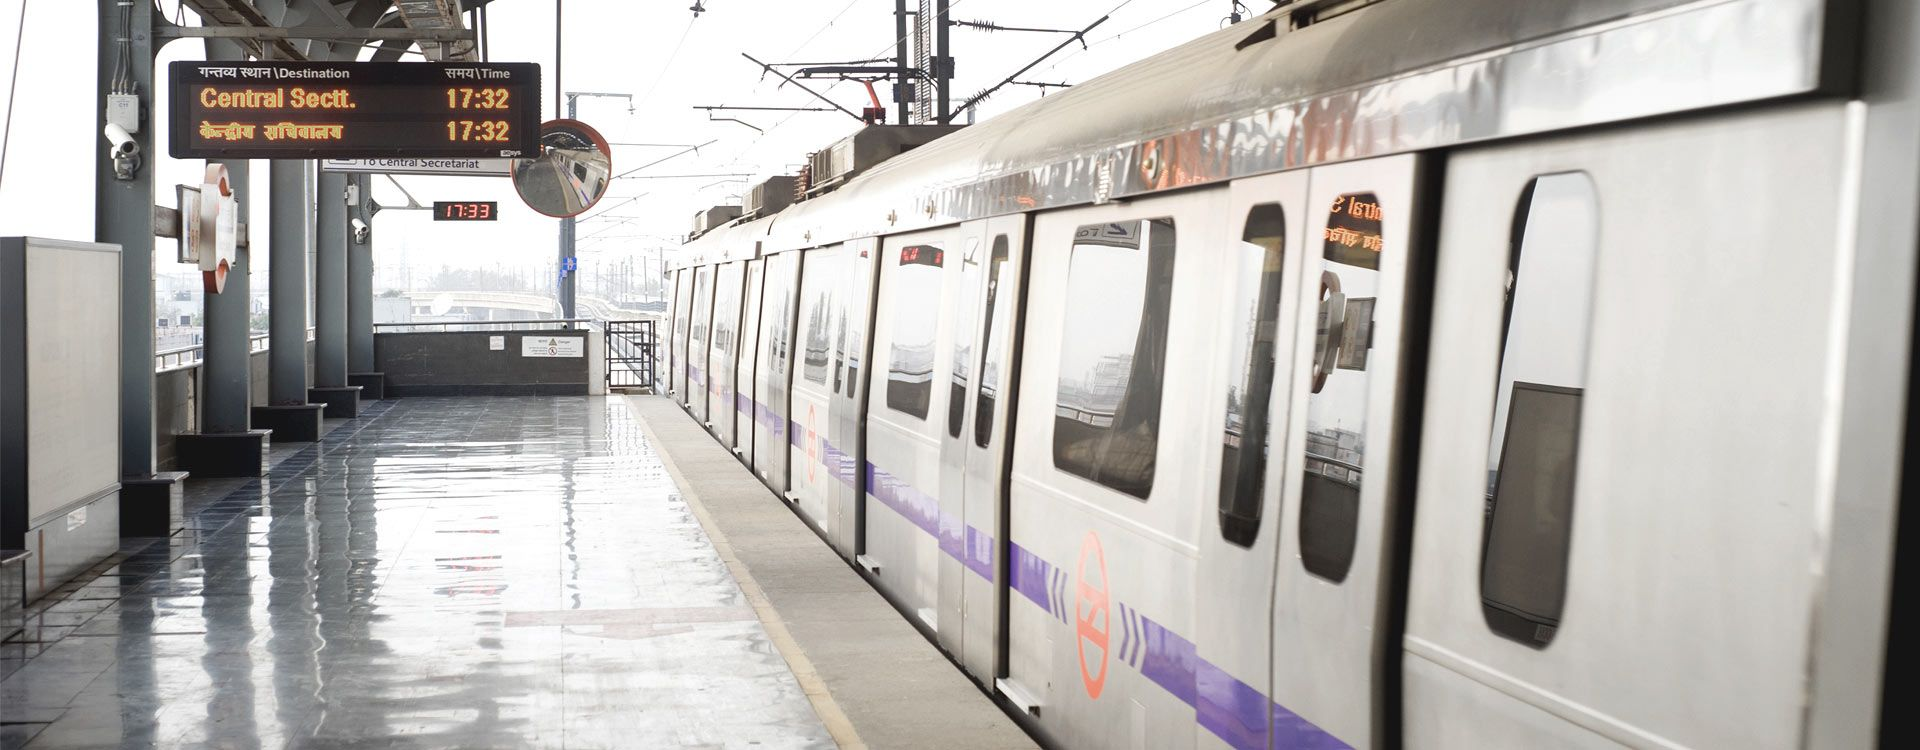 bnr-Delhi-Metro_Transport-and-Infrastructure